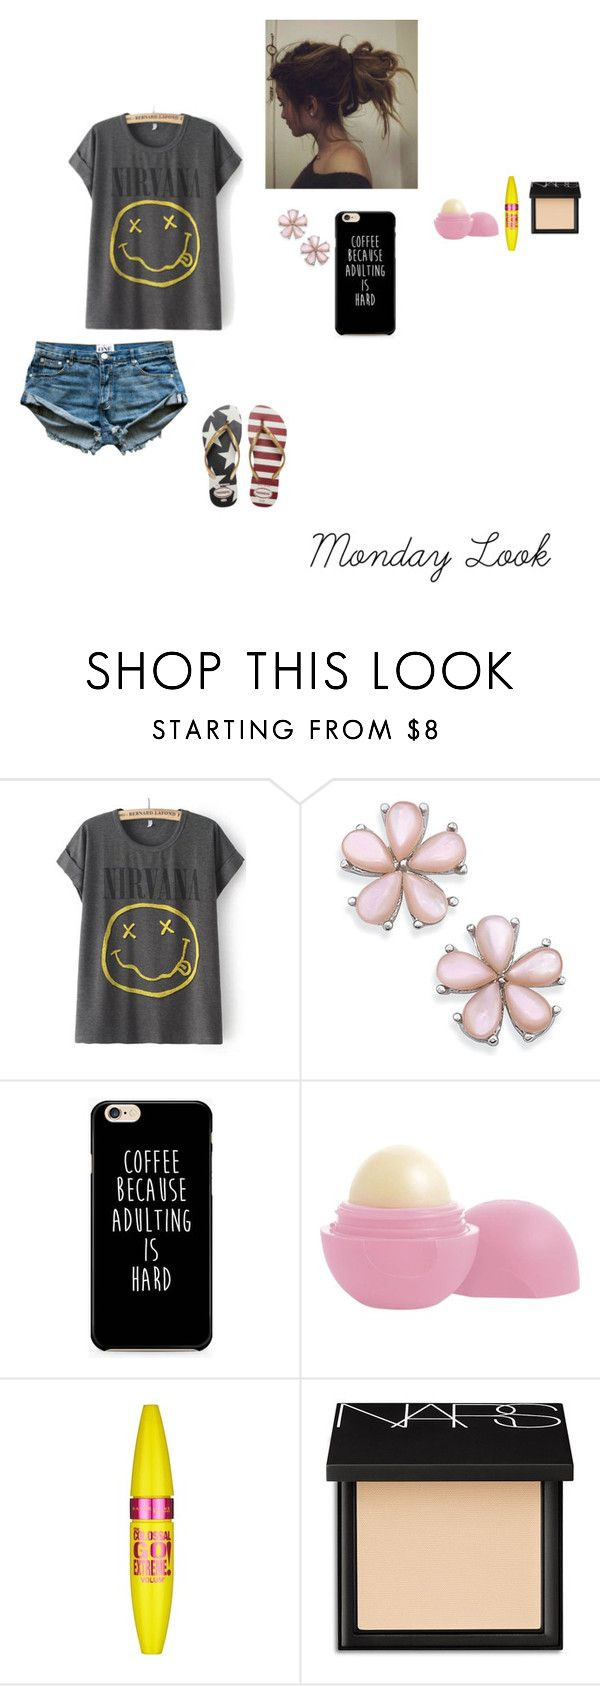 """""""Week Looks #1"""" by meliqueen ❤ liked on Polyvore featuring Eos, Maybelline, NARS Cosmetics, Havaianas and monday"""